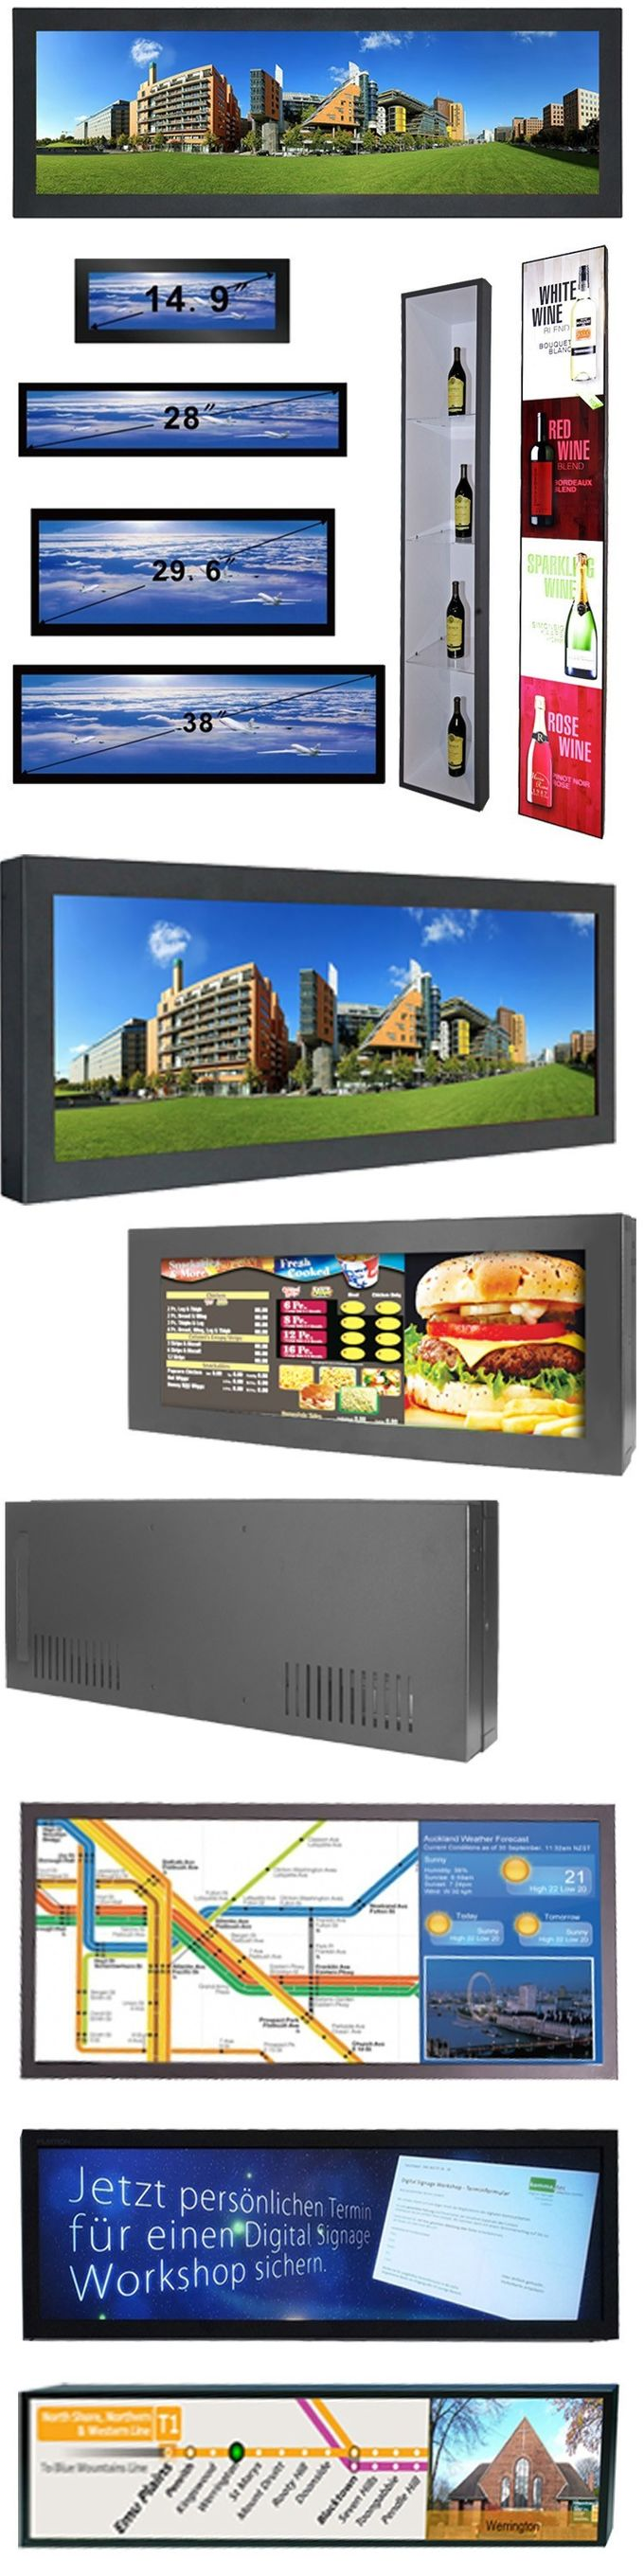 38 inch wall mounting FHD stretch bar lcd display with ultra wide lcd panel